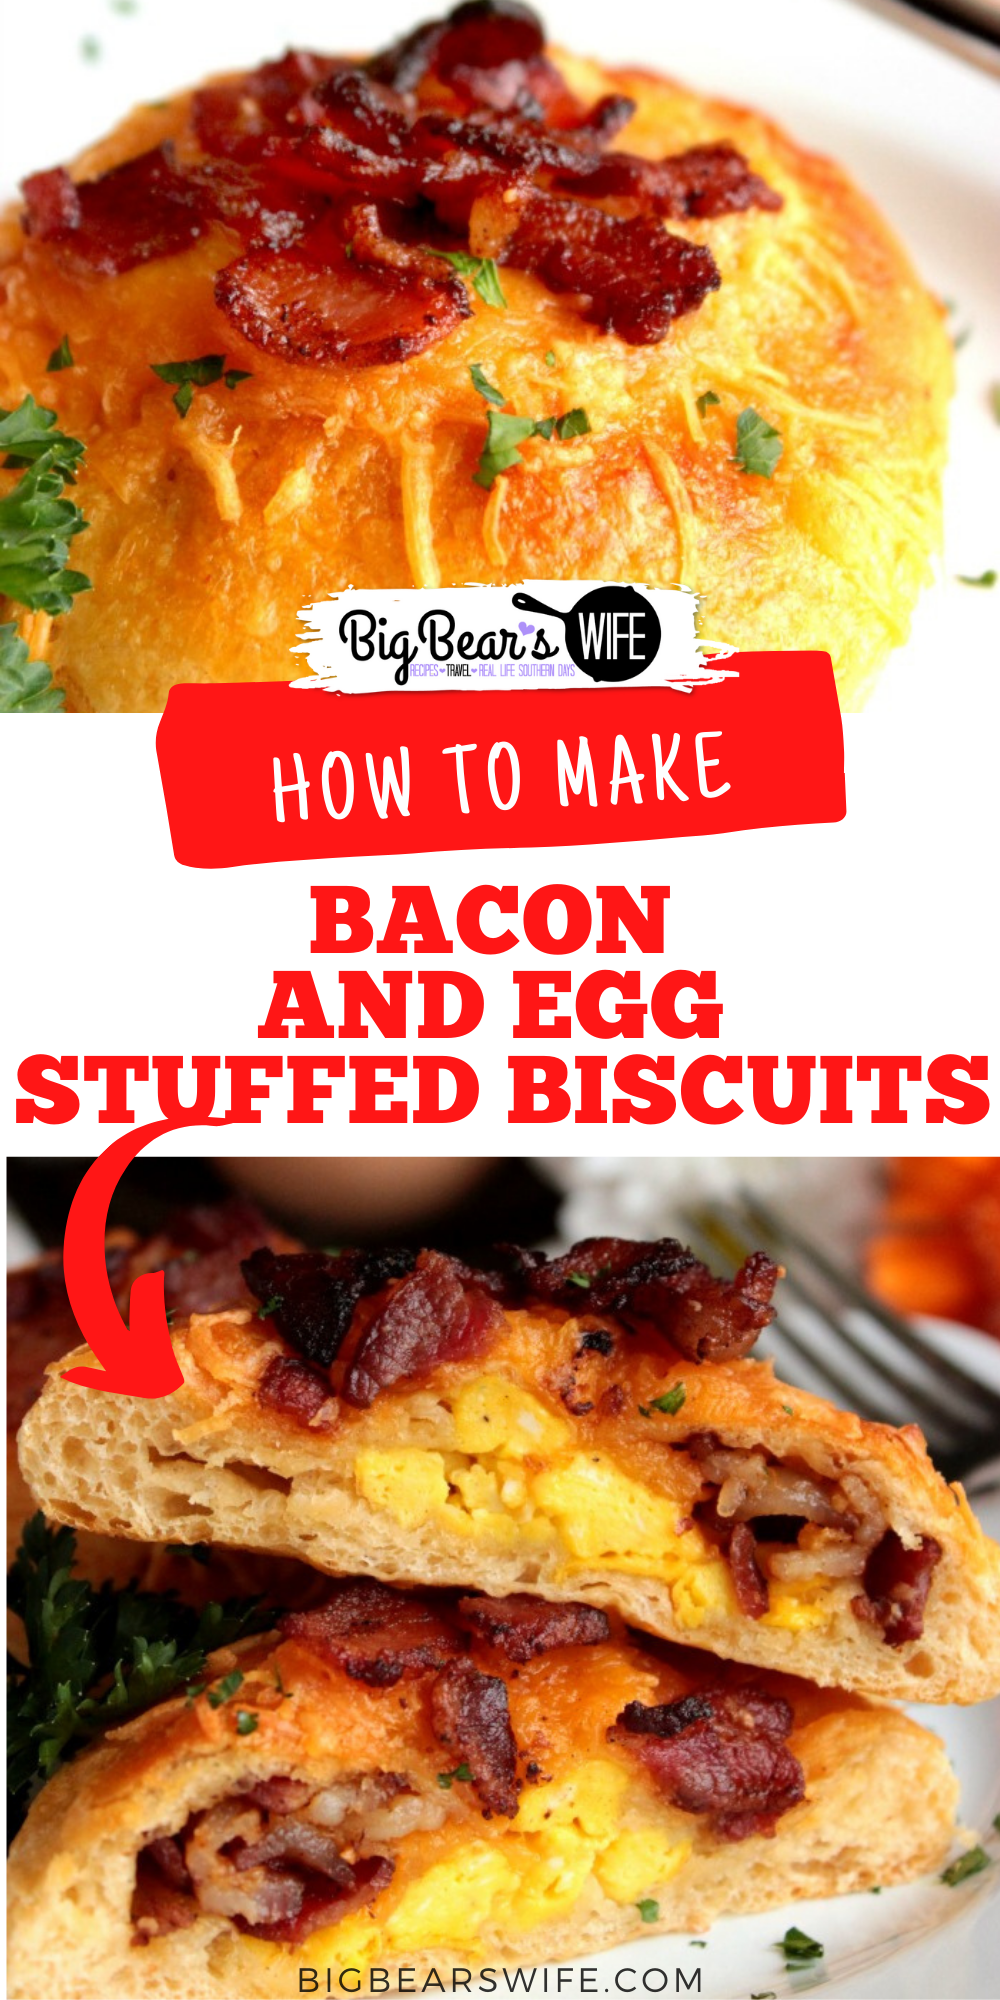 Bacon and Egg Stuffed Biscuits are easy breakfast biscuits stuffed with scrambled eggs, cheddar cheese and crispy bacon. via @bigbearswife